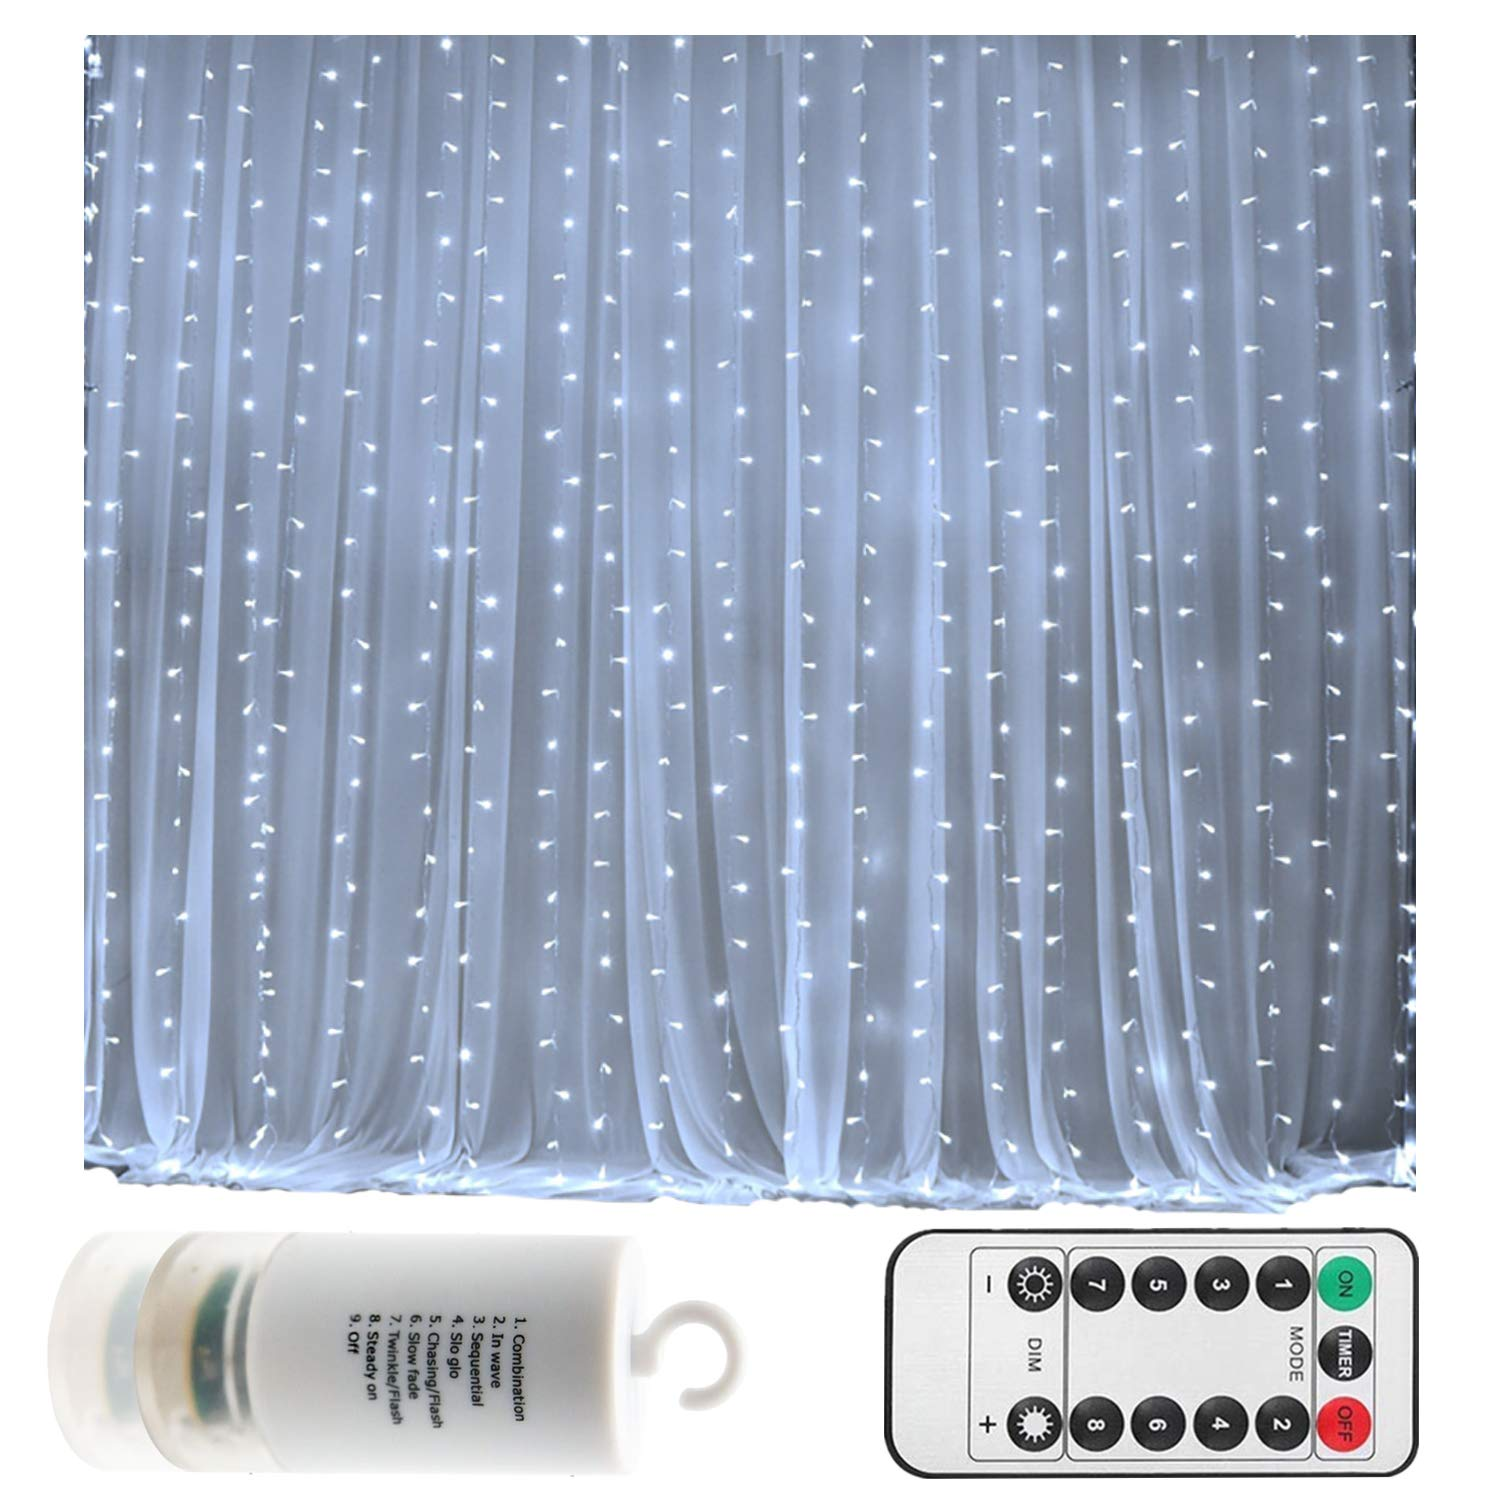 Battery Operated 300 LED Curtain String lights w/ Remote & Timer, Outdoor Curtain Icicle Wall Lights For Wedding Backdrops, Christmas, Holiday, Camping Decoration (9.8×9.8ft, Dimmable, Cool White)